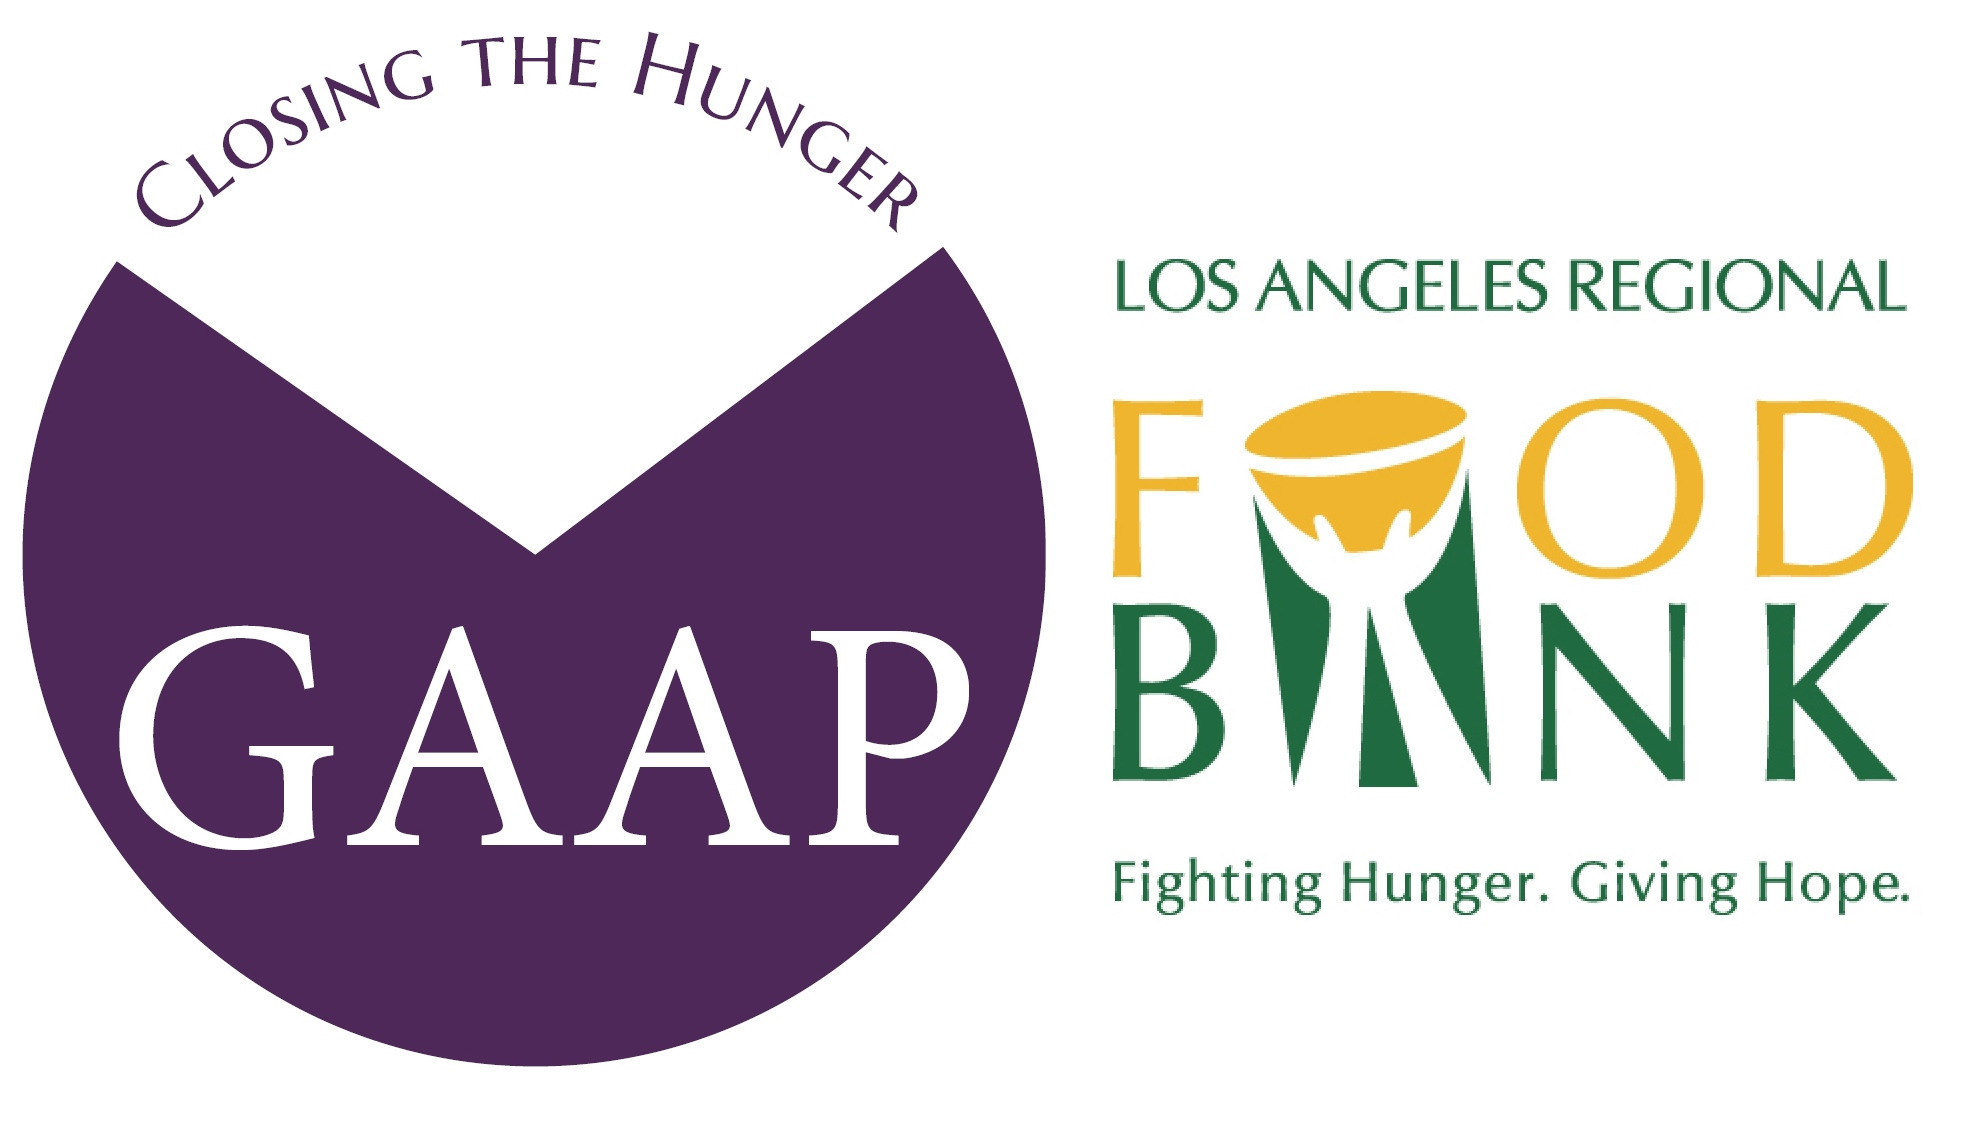 Closing the Hunger GAAP